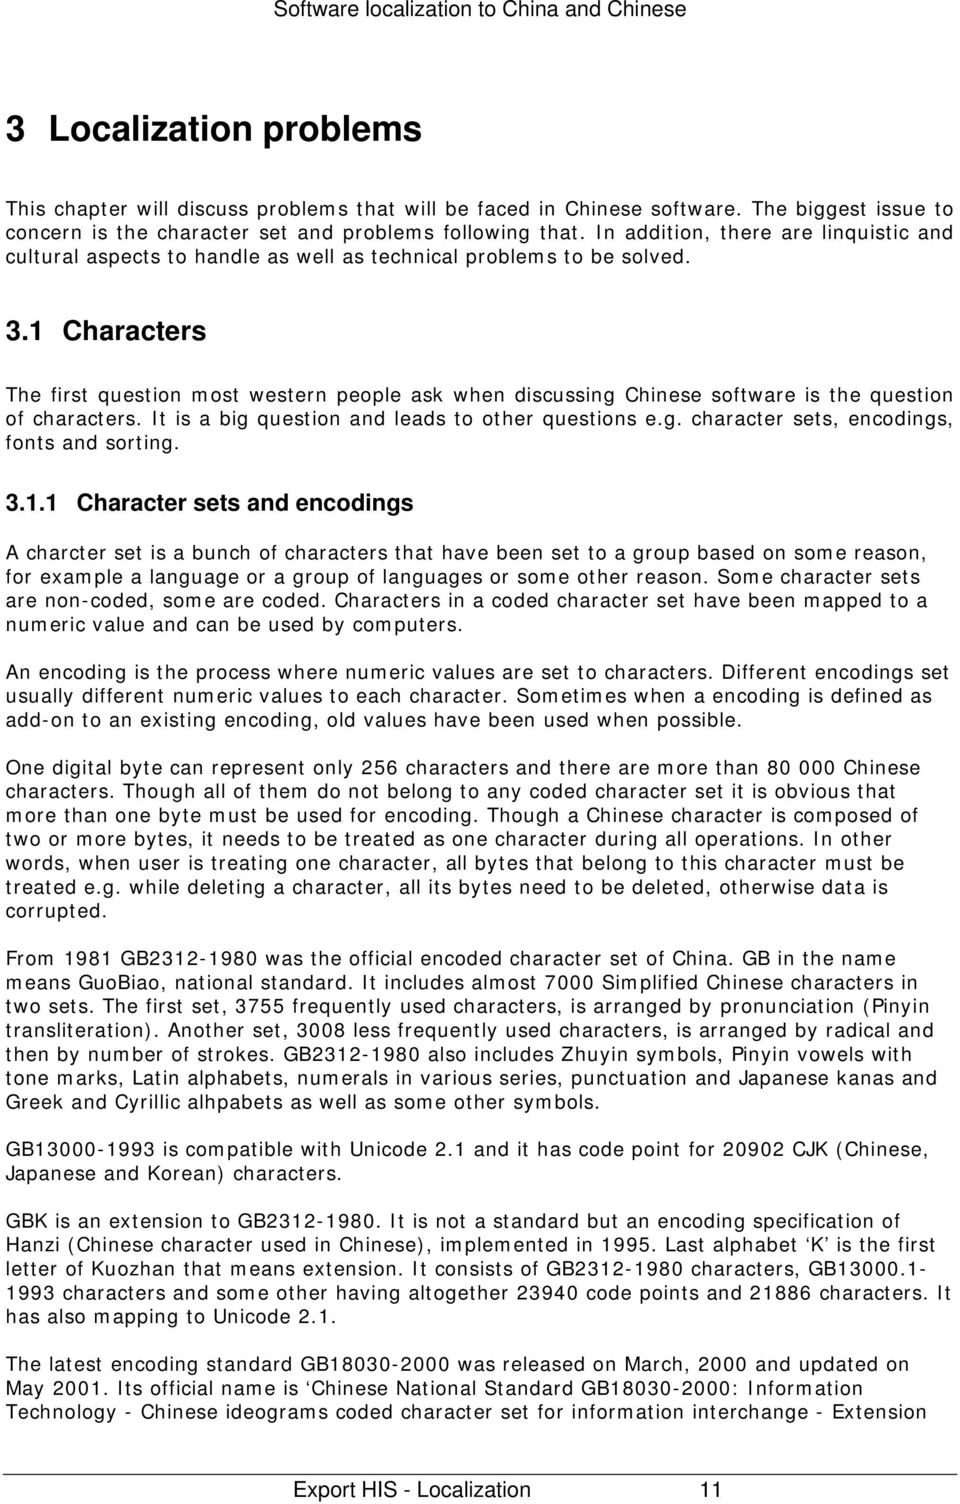 1 Characters The first question most western people ask when discussing Chinese software is the question of characters. It is a big question and leads to other questions e.g. character sets, encodings, fonts and sorting.